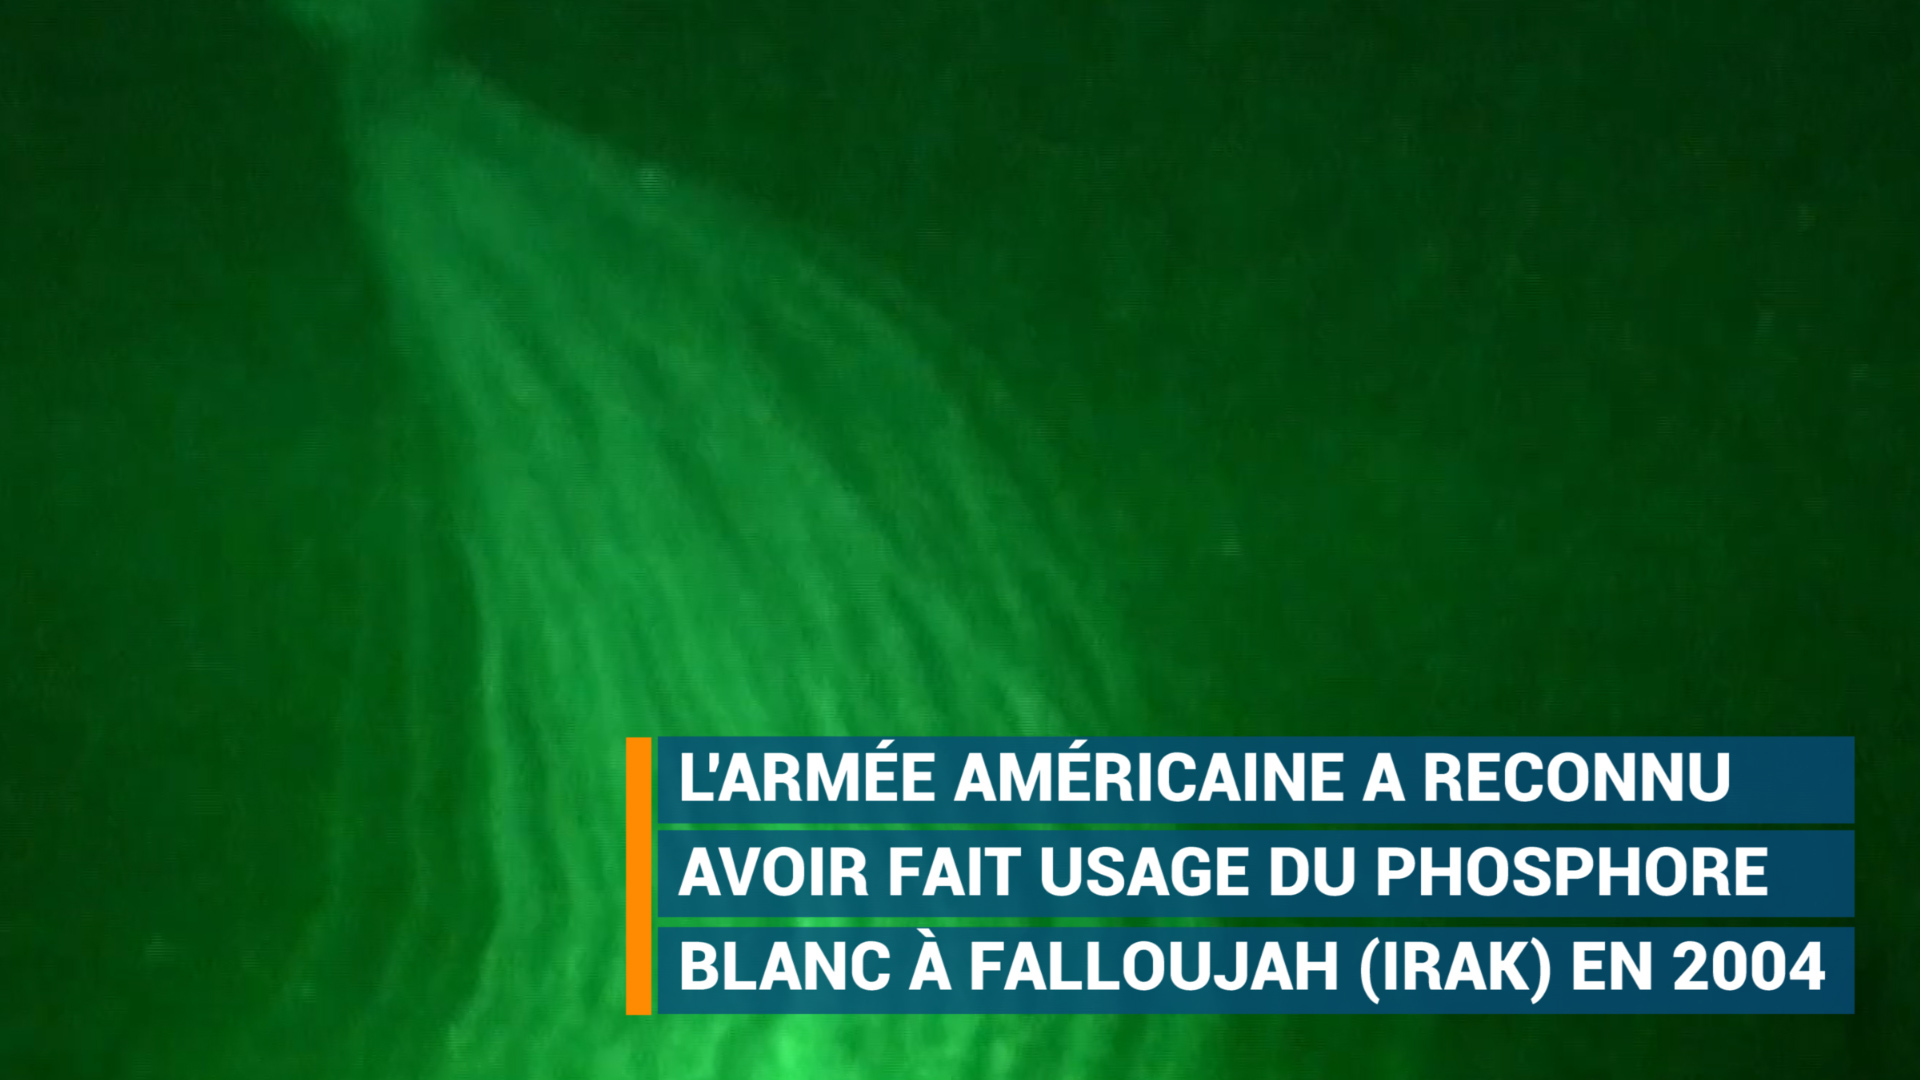 HRW prévient la coalition internationale anti-EI sur le phosphore blanc